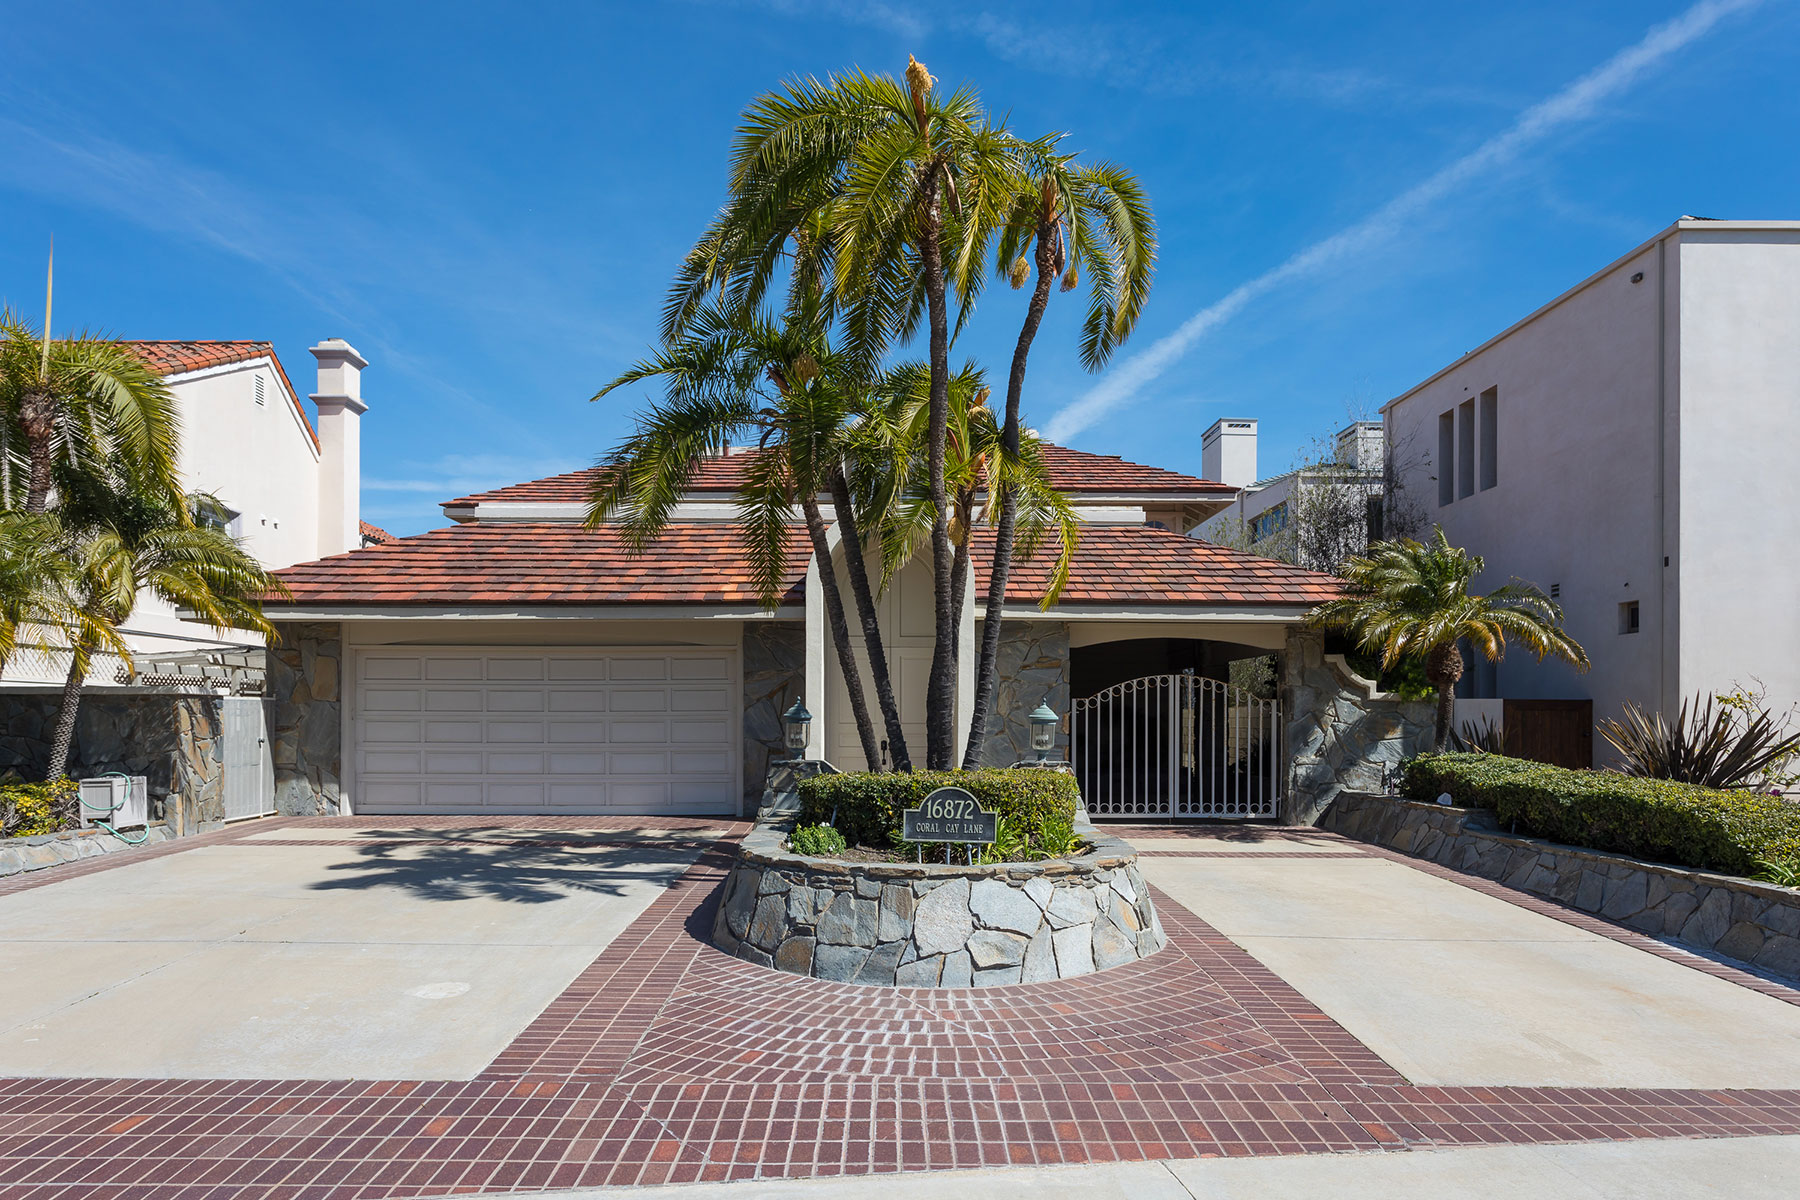 Single Family Home for Sale at 16872 Coral Cay Huntington Beach, California, 92649 United States